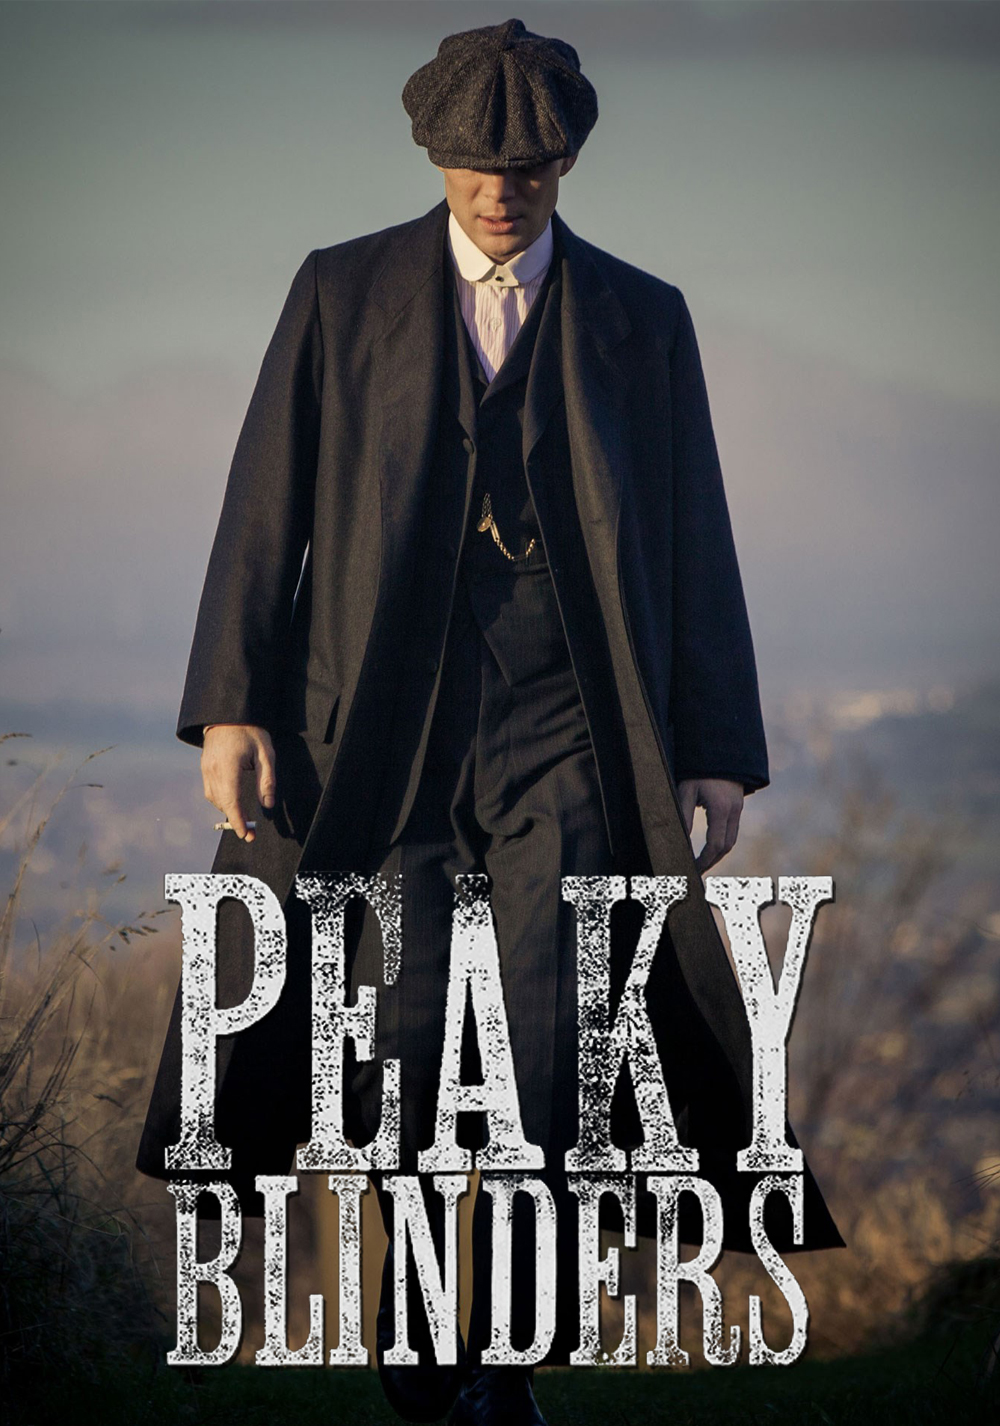 Peaky Blinders (2013 series)